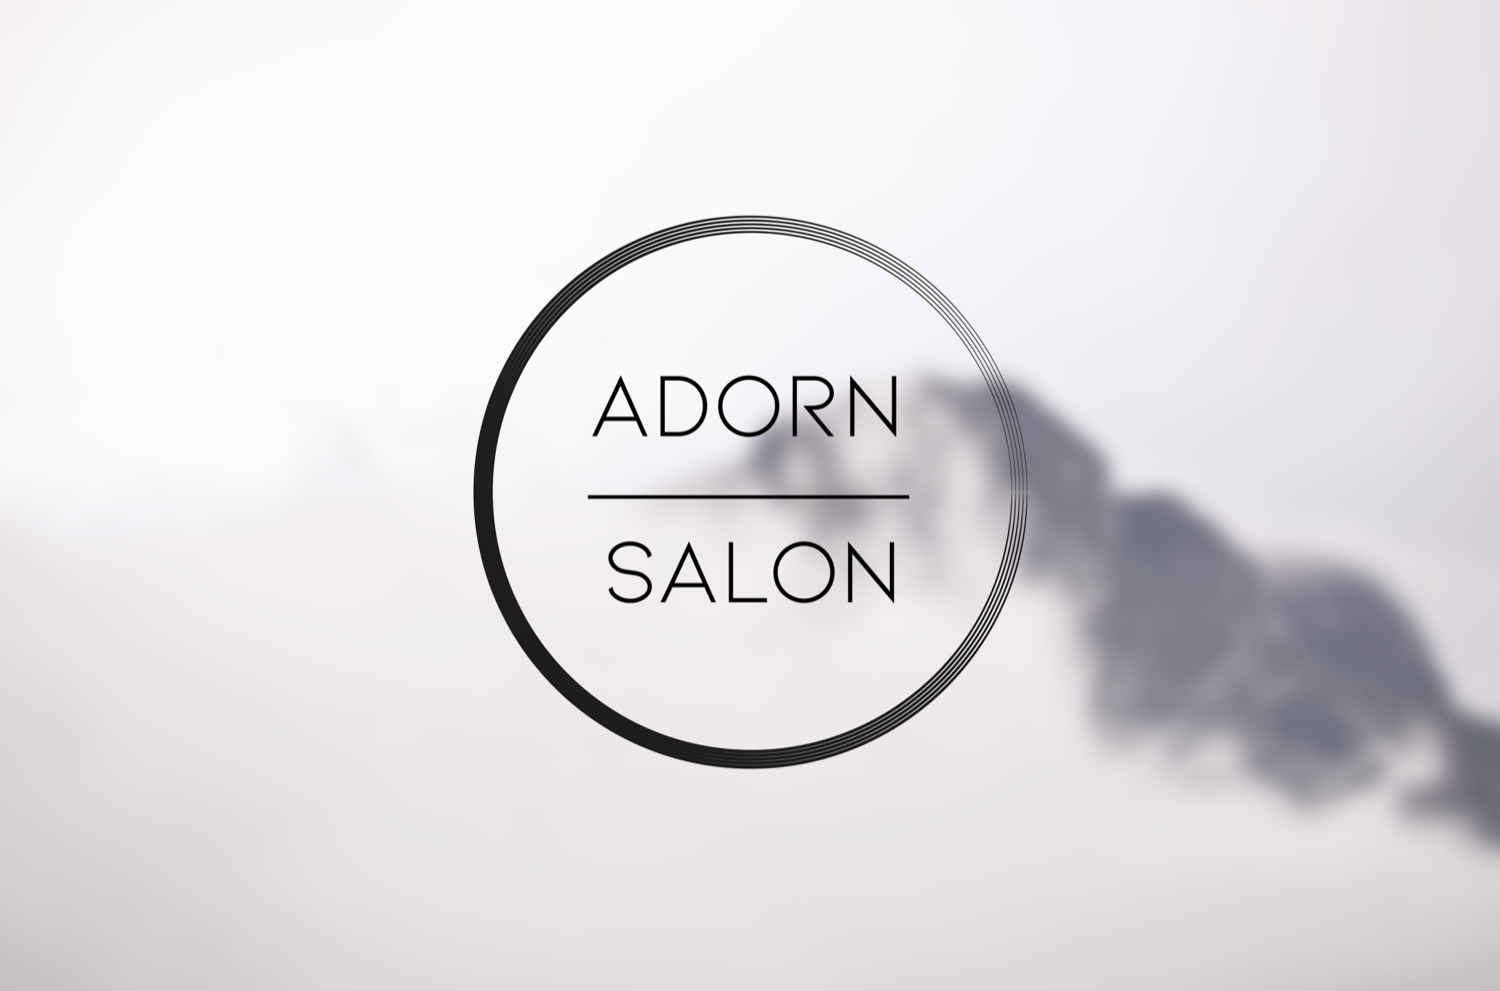 Adorn Salon logo design